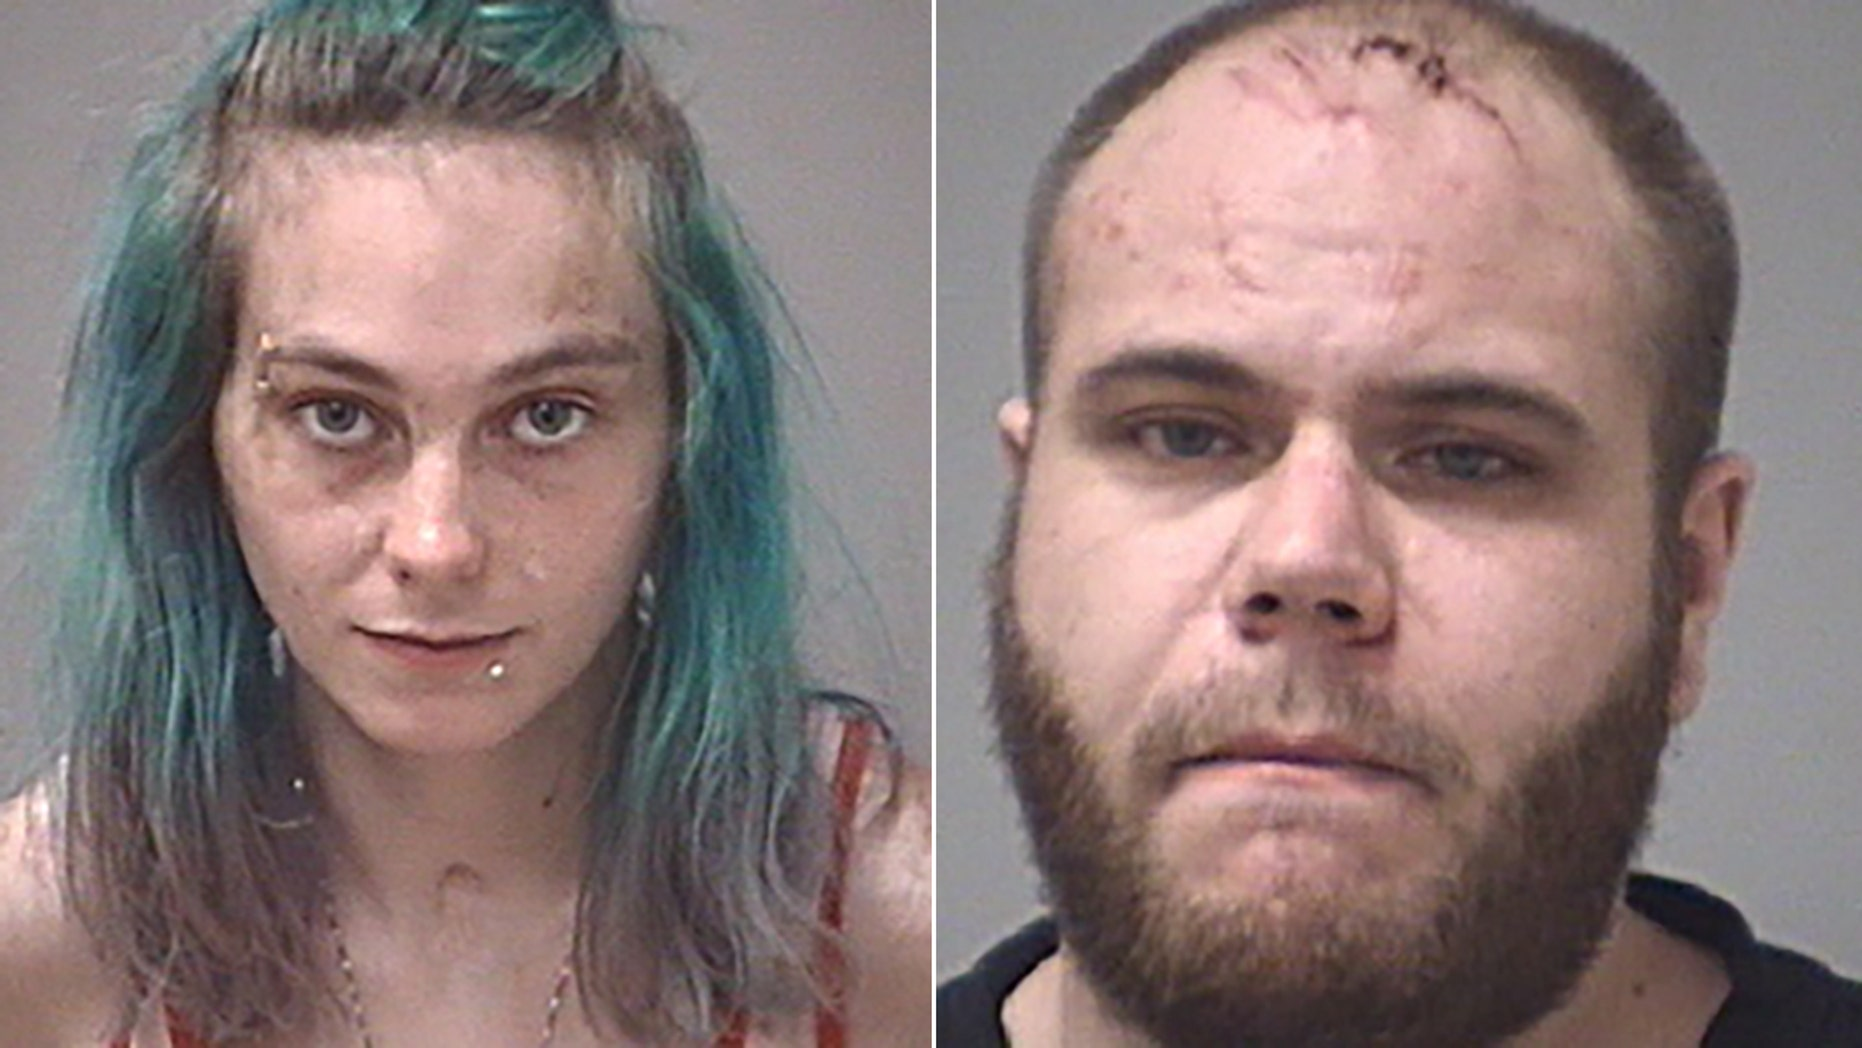 Candice Renea Diaz, 24, and her boyfriend, Brad Edward Fields, 28, are accused of torturing and killing a 4-year-old girl.